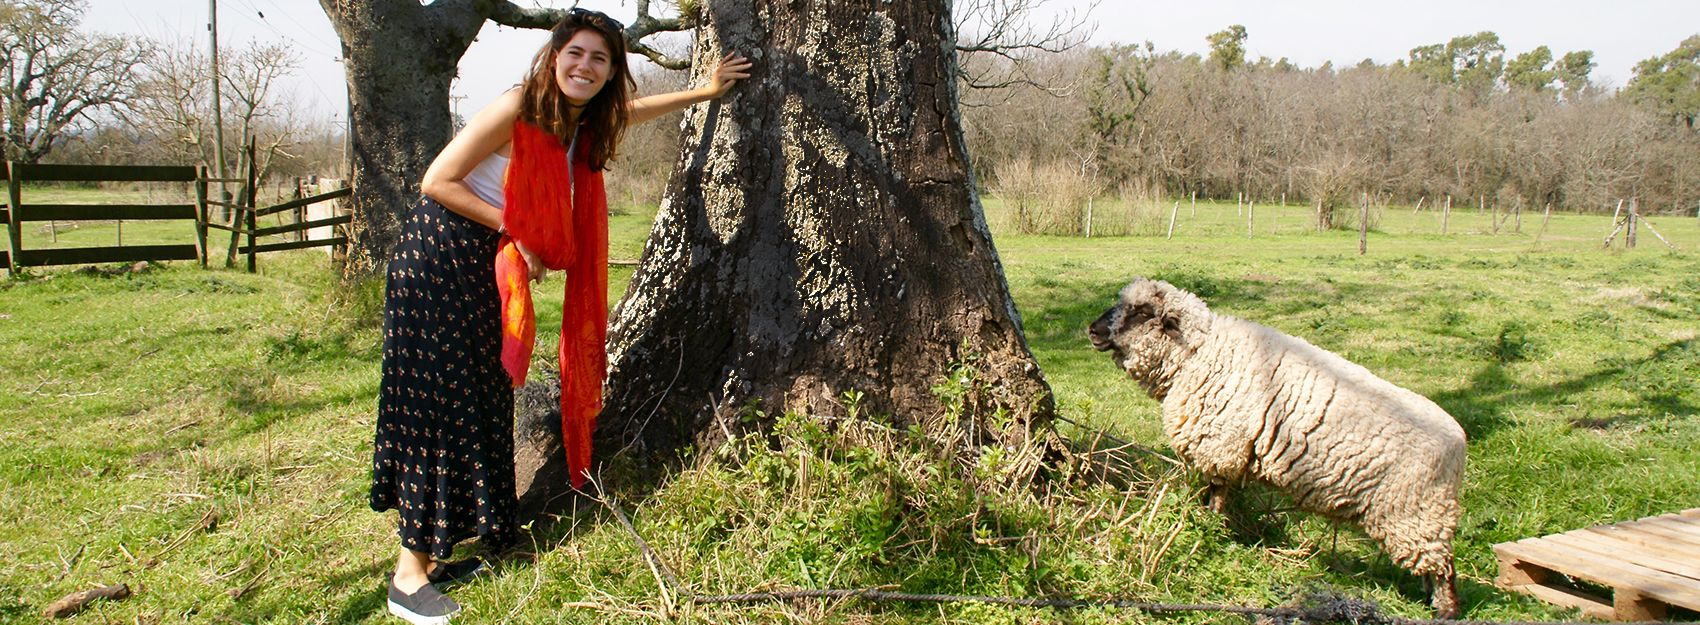 Buenos Aires study abroad student poses by a tree and a sheep